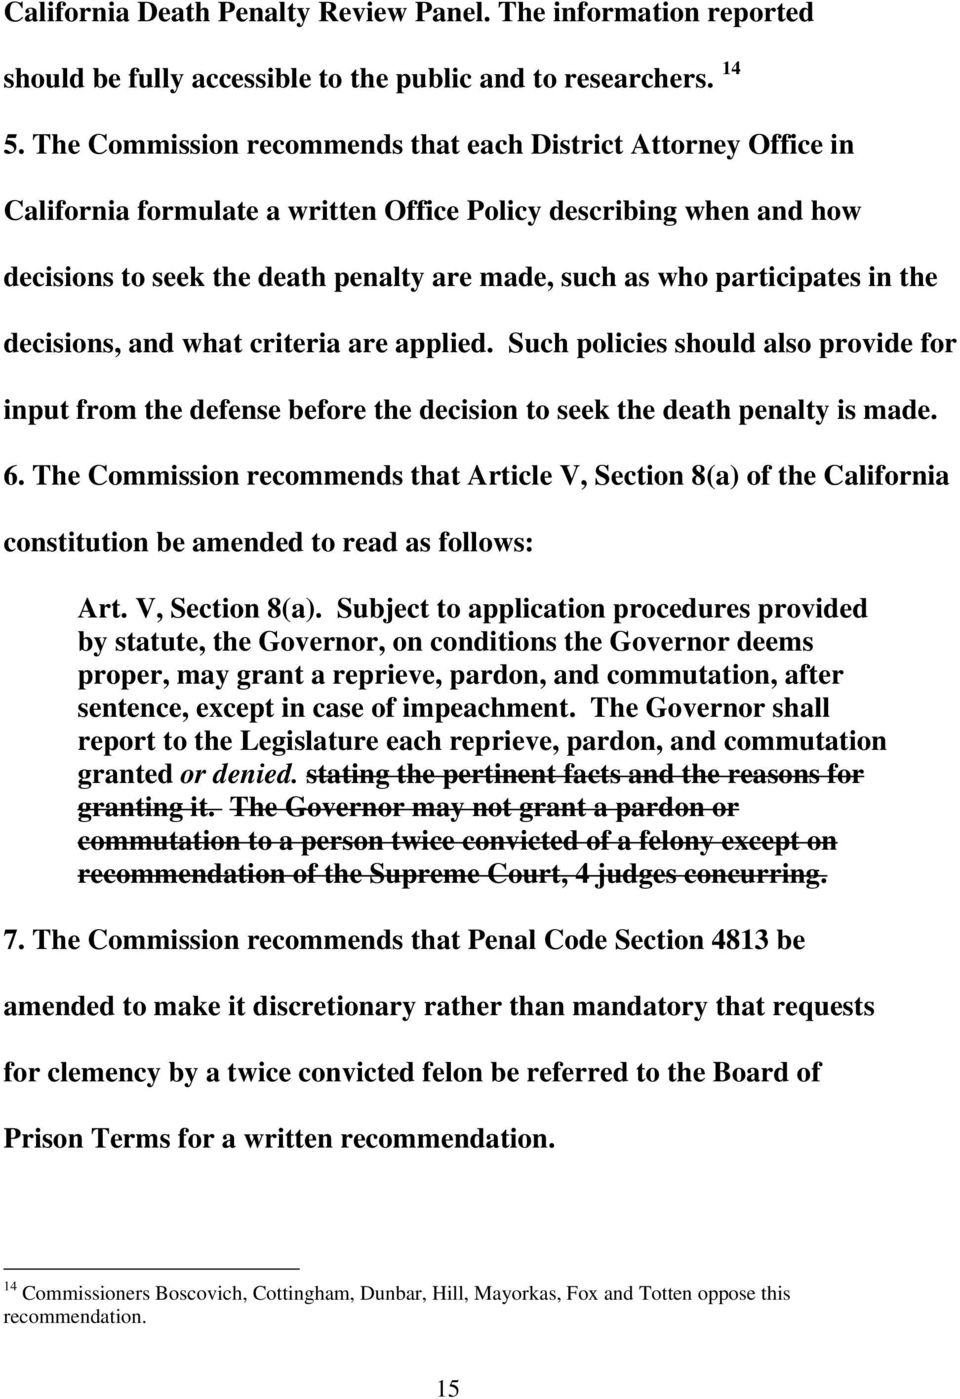 participates in the decisions, and what criteria are applied. Such policies should also provide for input from the defense before the decision to seek the death penalty is made. 6.